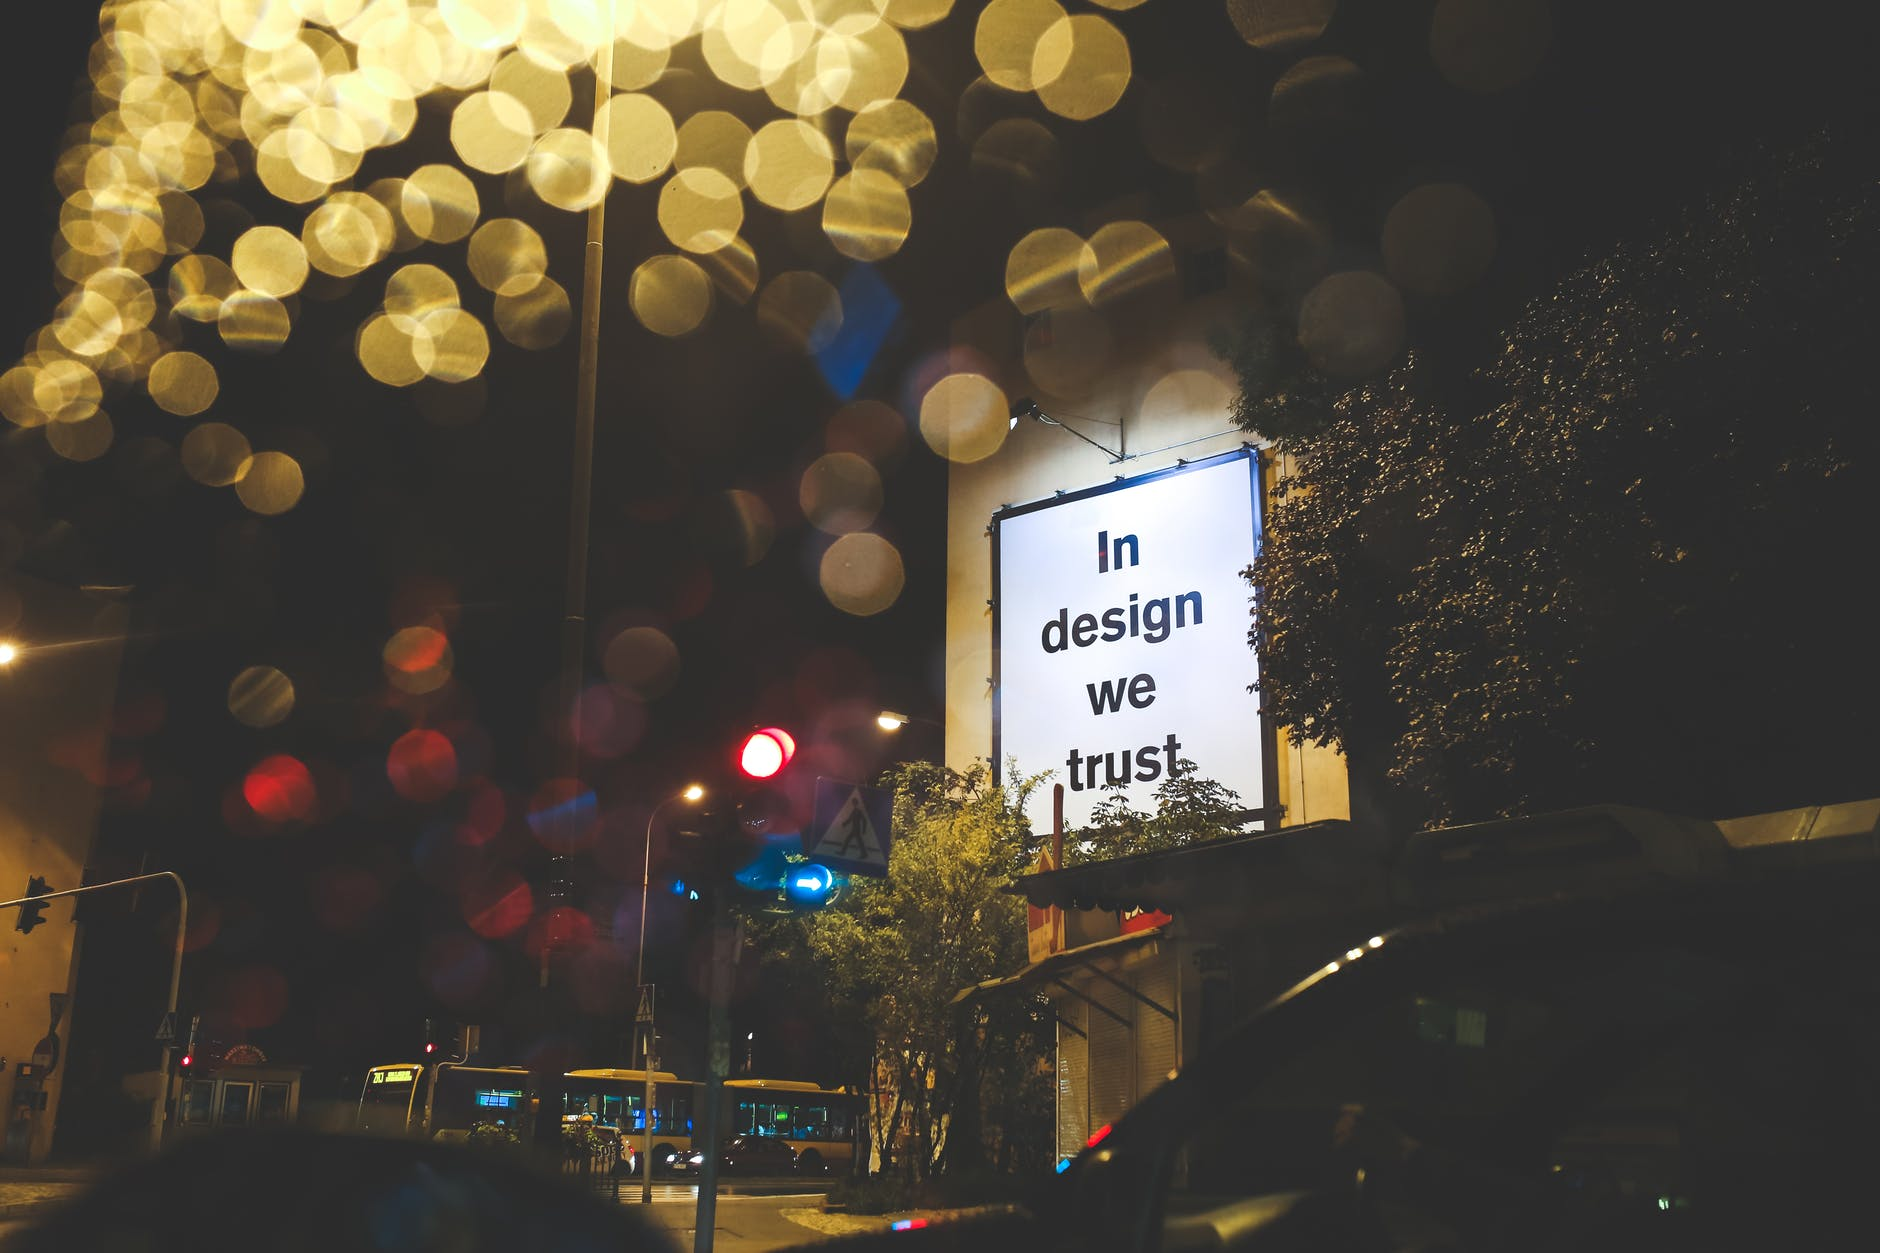 In Design We Trust Billboard image (public domain)